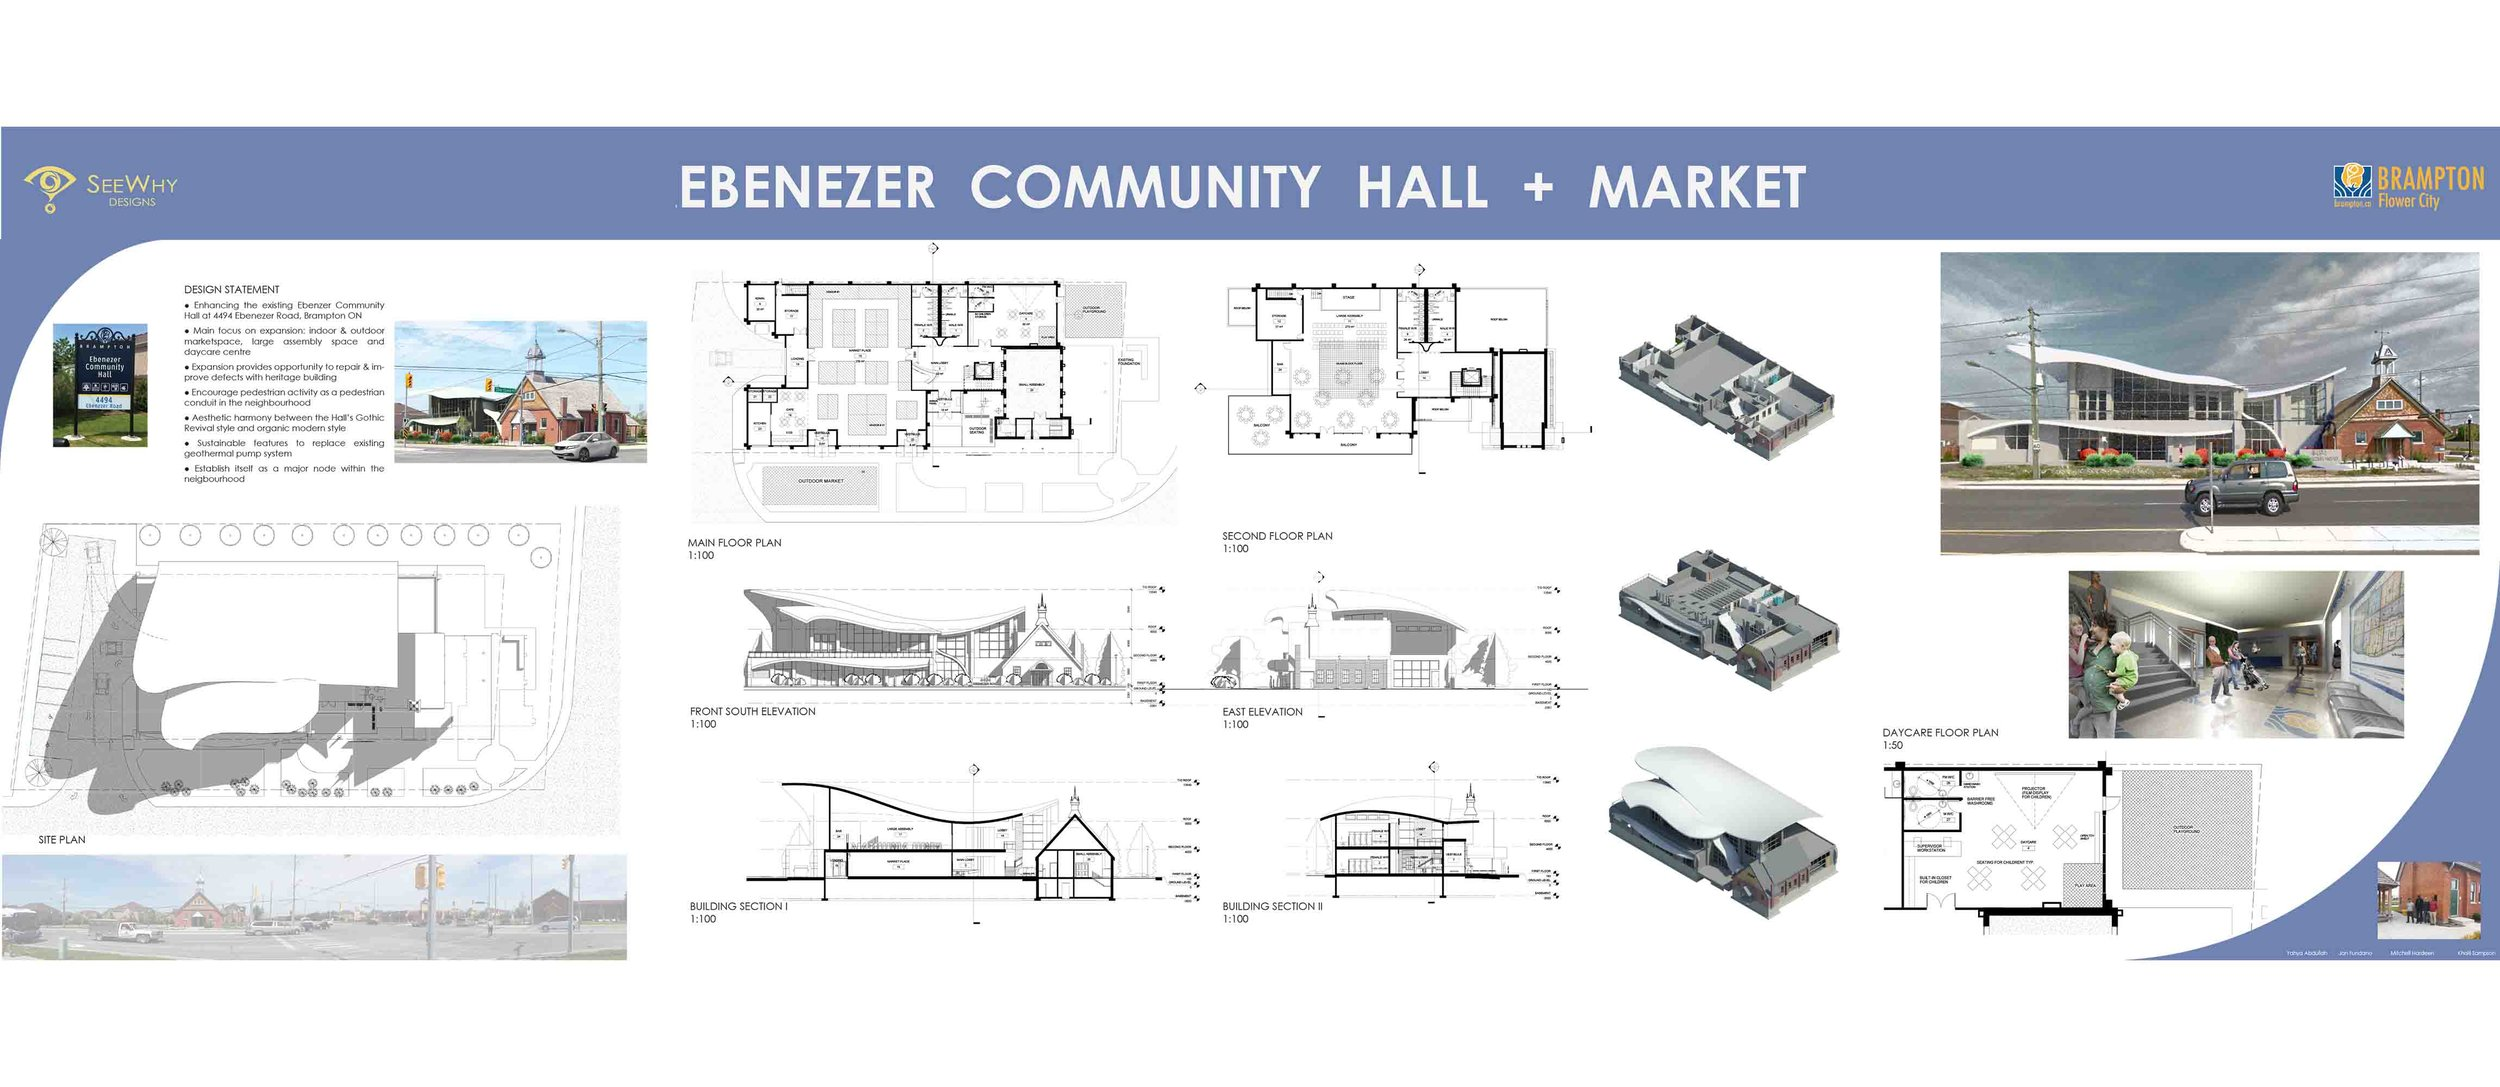 The Ebenezer Community Hall + Market studio design project